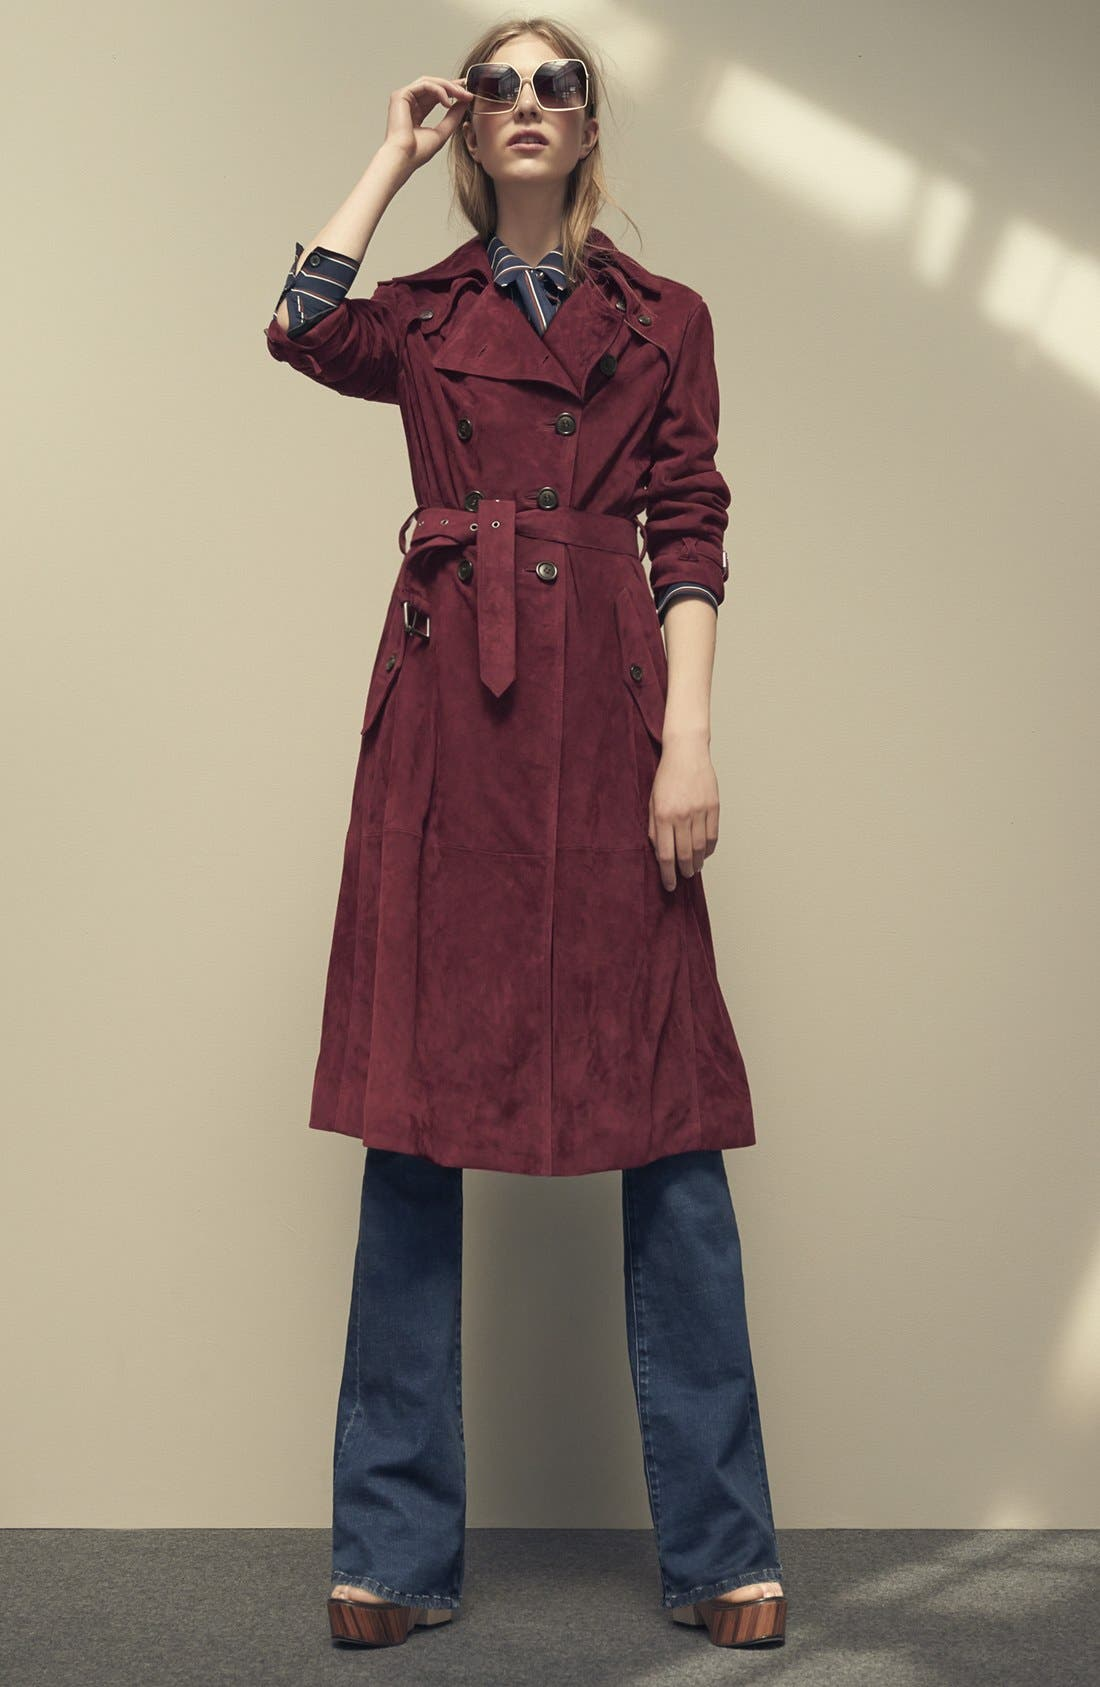 RebeccaMinkoff'Amis' SuedeTrench Coat,                             Alternate thumbnail 4, color,                             930